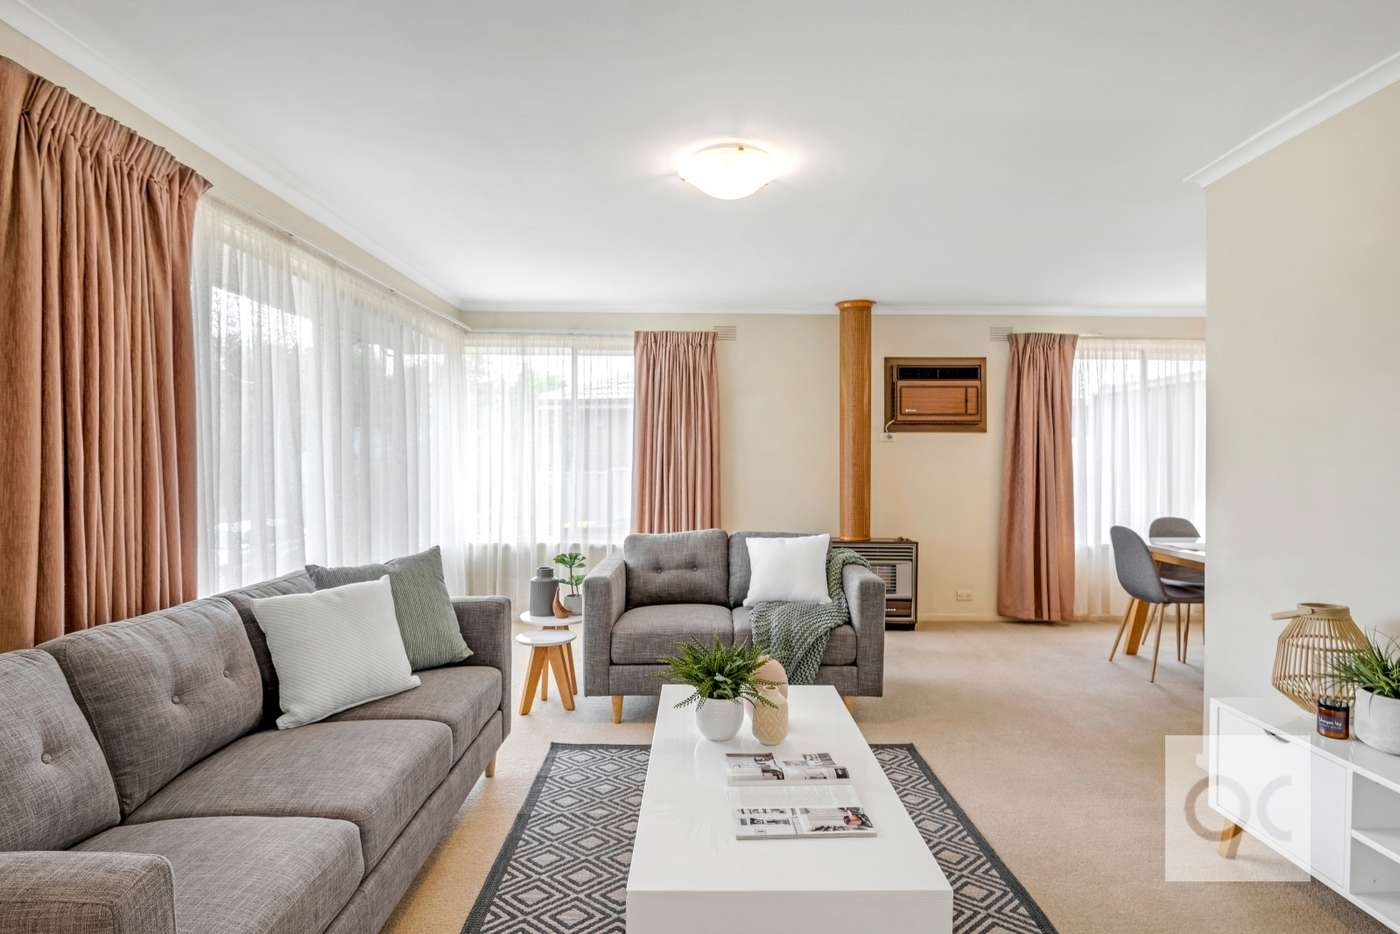 Fifth view of Homely house listing, 1 Pepe Court, Modbury North SA 5092